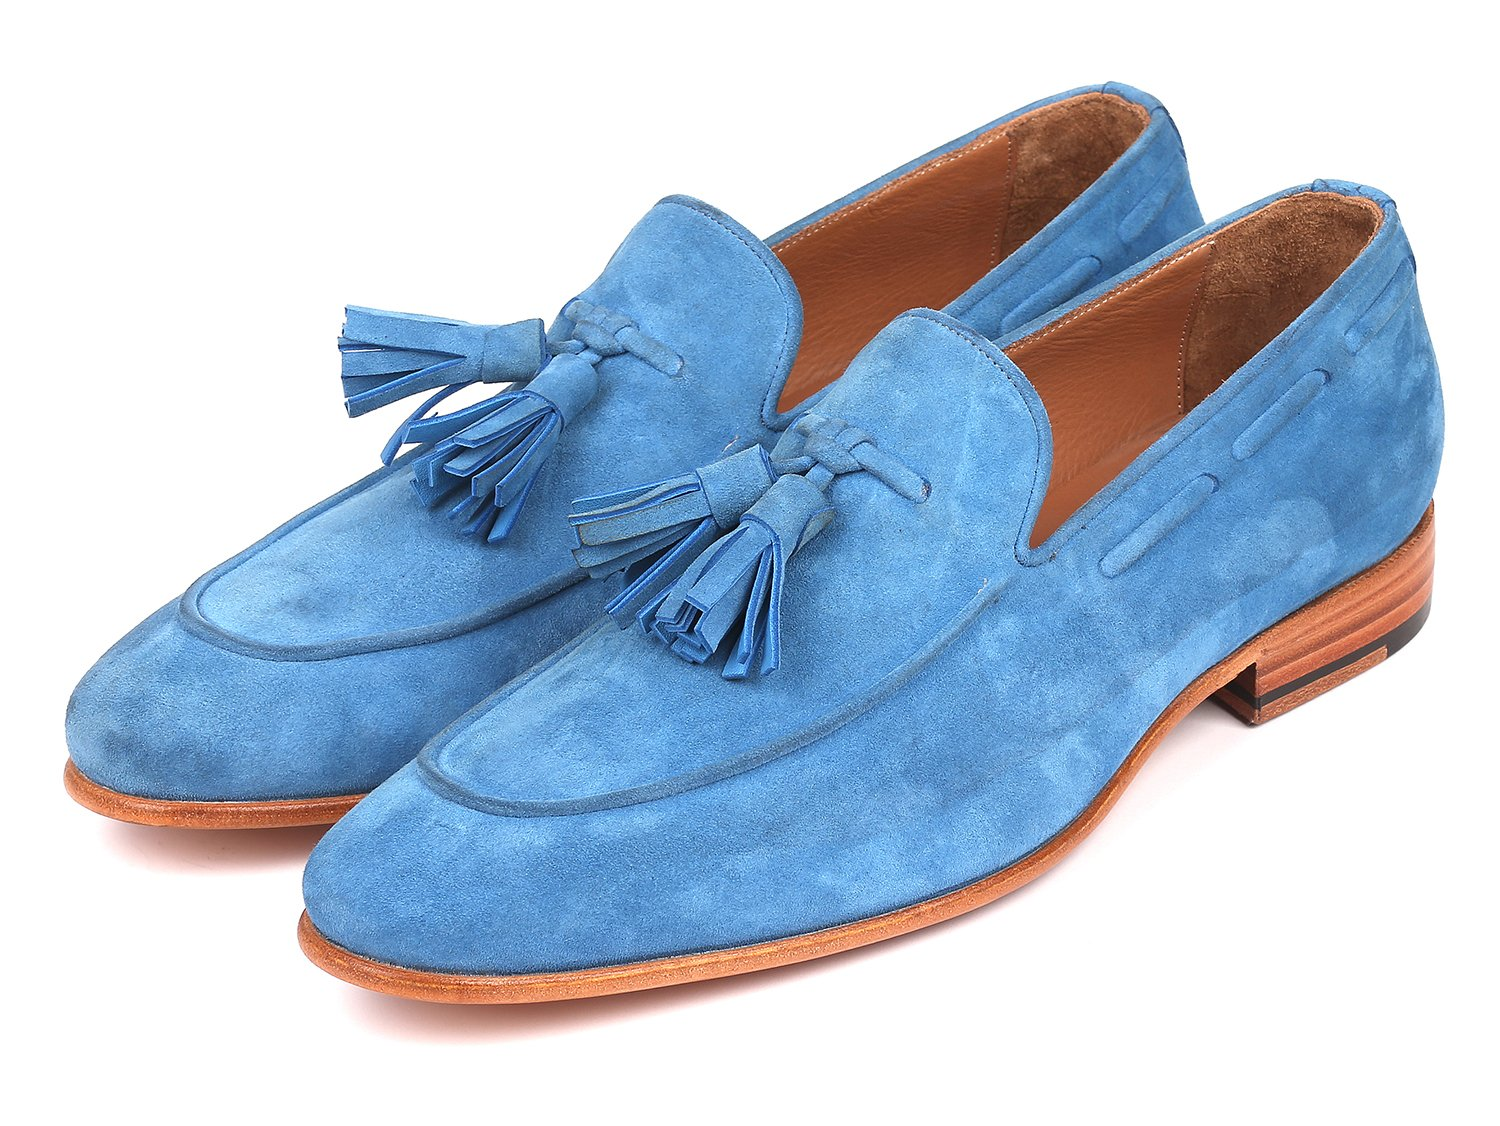 Paul Parkman Men's Tassel Loafers Blue Suede (ID#BLU32FG)